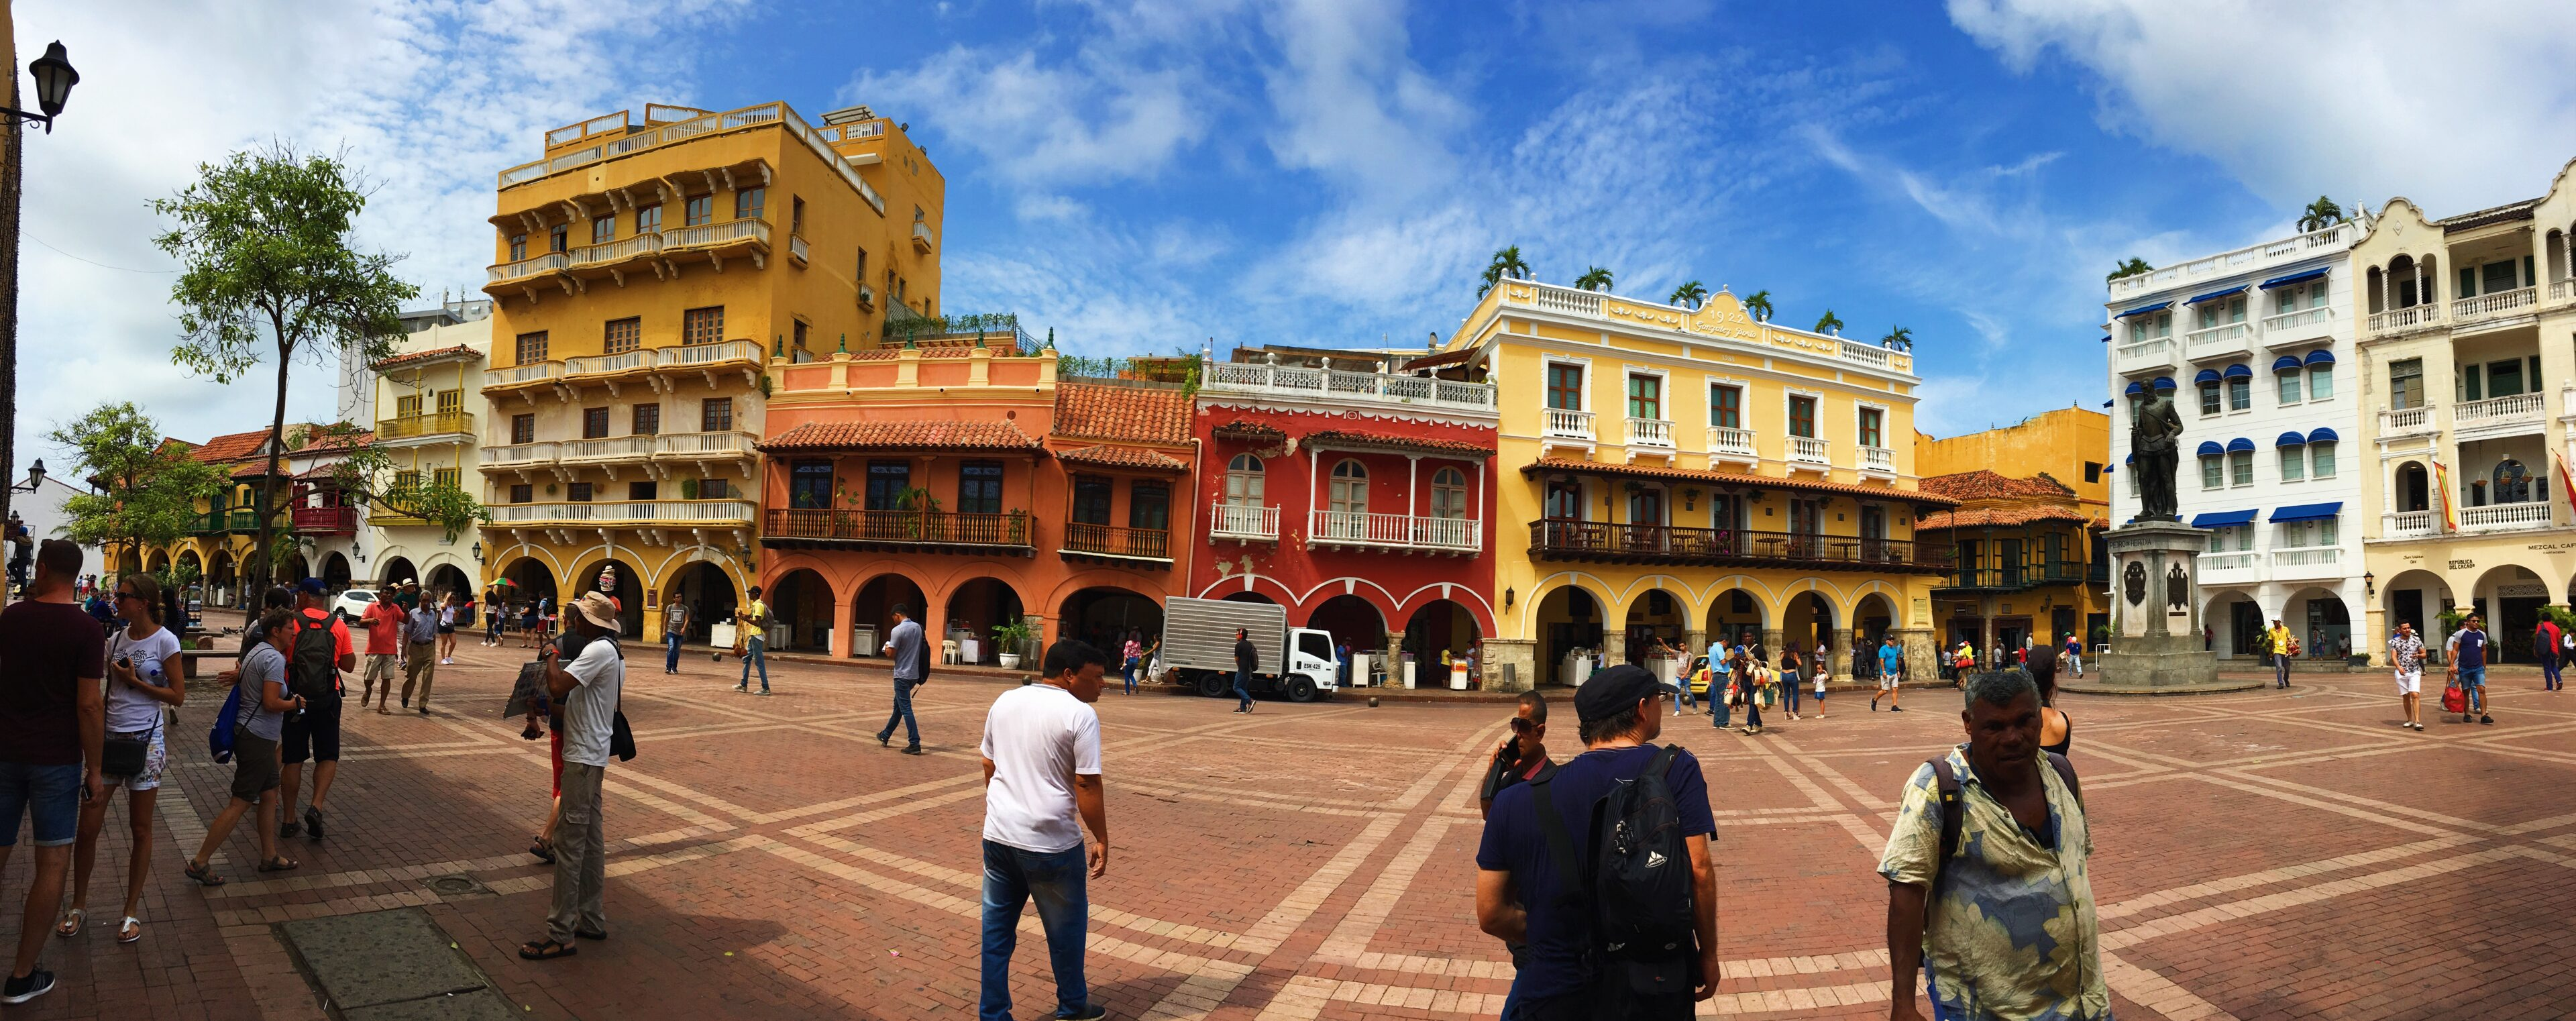 lcm-liveclothesminded-colombia-travel-vacation-cartagena-walled city-old town-south america